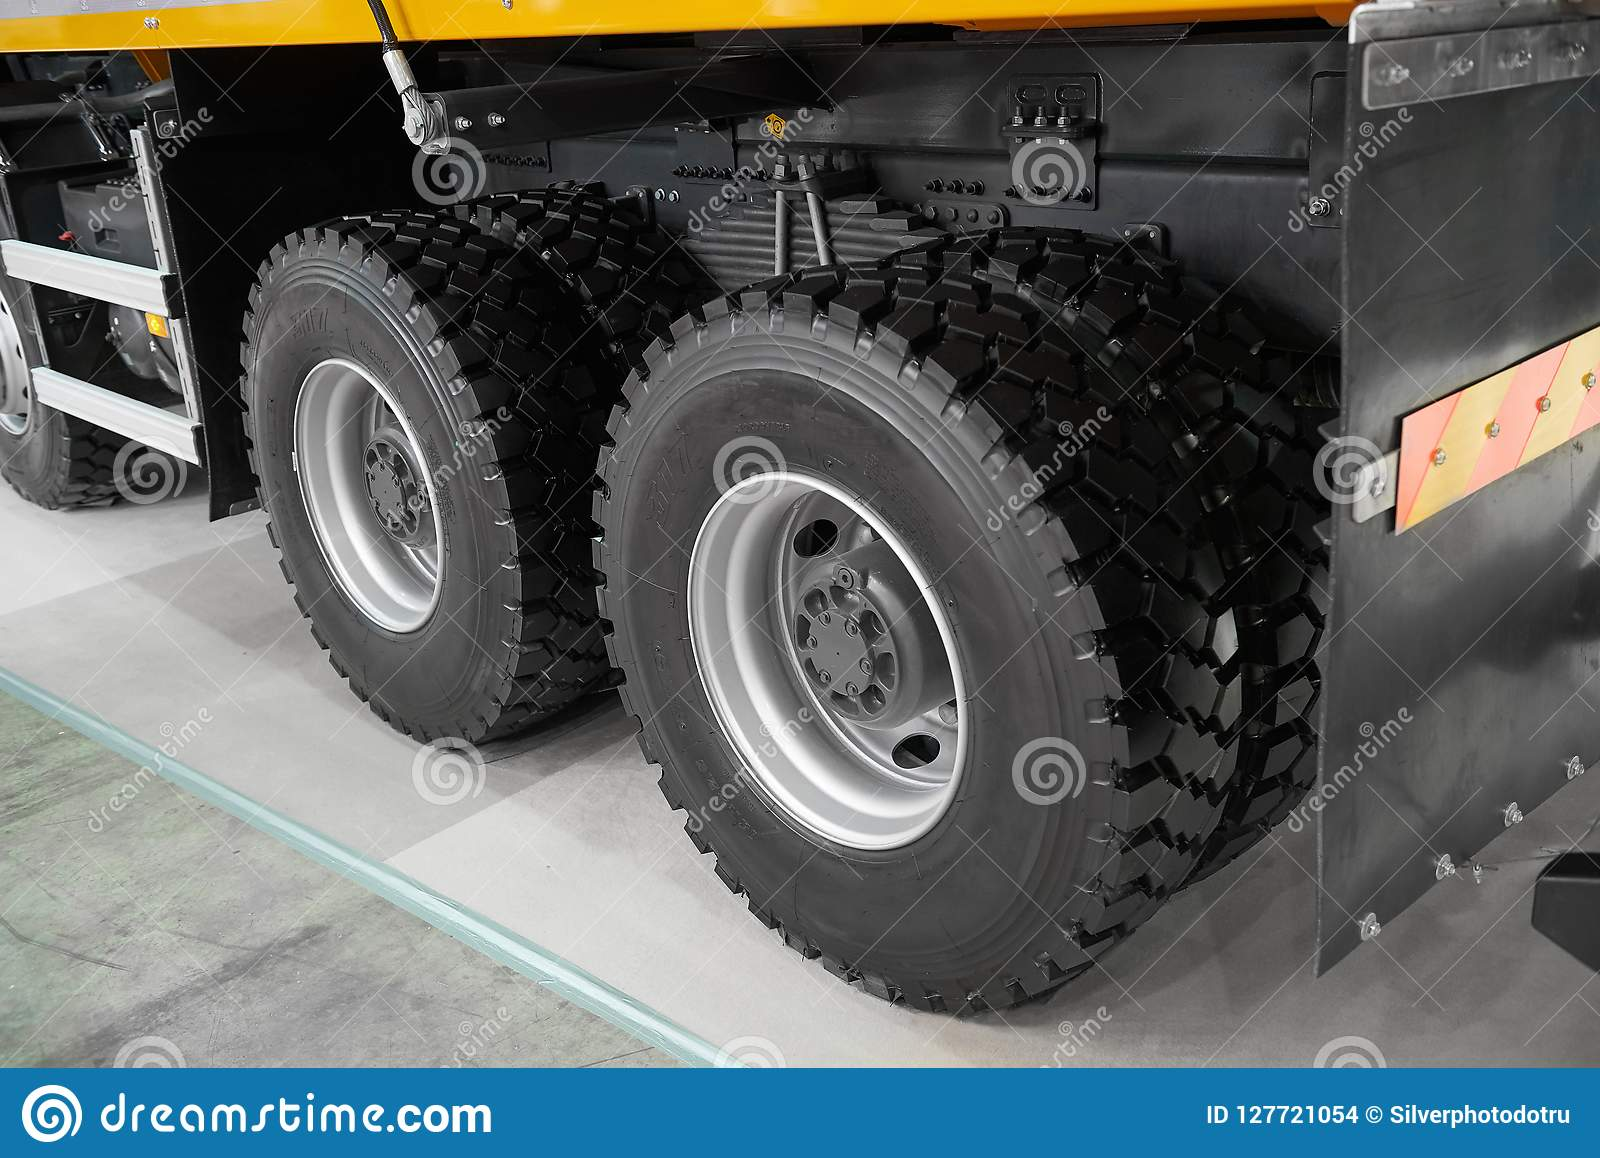 View On New Clean Rear Tipper Truck Wheels And Tires Mud Wheels For Commercial Transport Special Cars Truck Chassis With Wheels Stock Photo Image Of Europe Huge 127721054